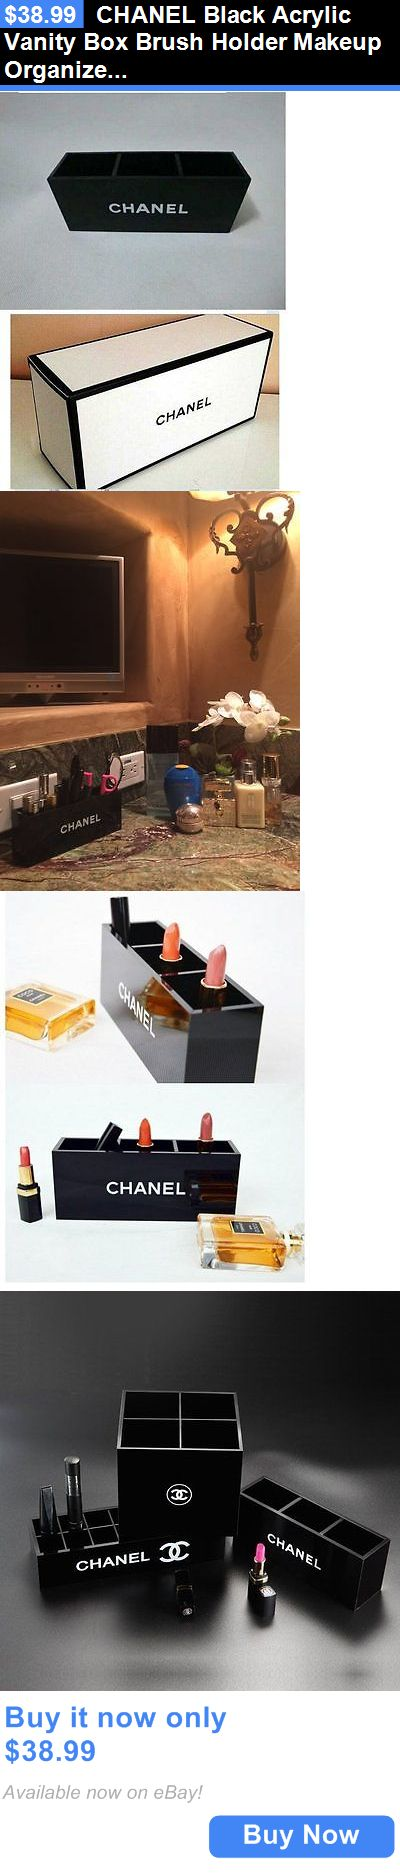 Other Makeup Tools and Accs: Chanel Black Acrylic Vanity Box Brush Holder Makeup Organizer With Box Vip Gift BUY IT NOW ONLY: $38.99